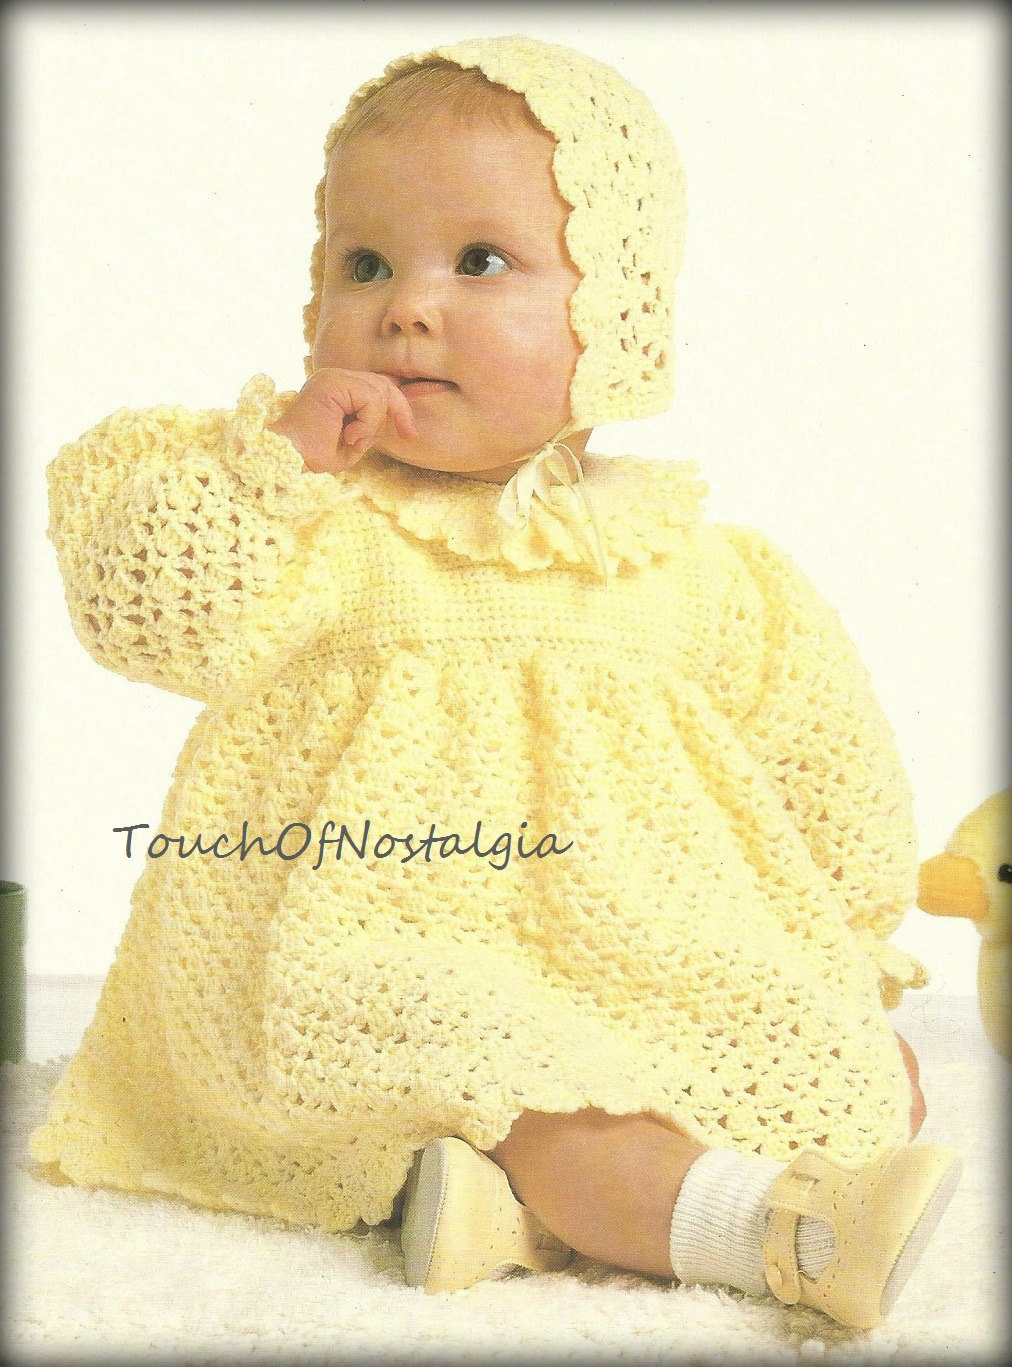 Crochet Baby Dress And Bonnet Pattern : Crochet Baby DRESS Bonnet Pattern LACY Baby by ...